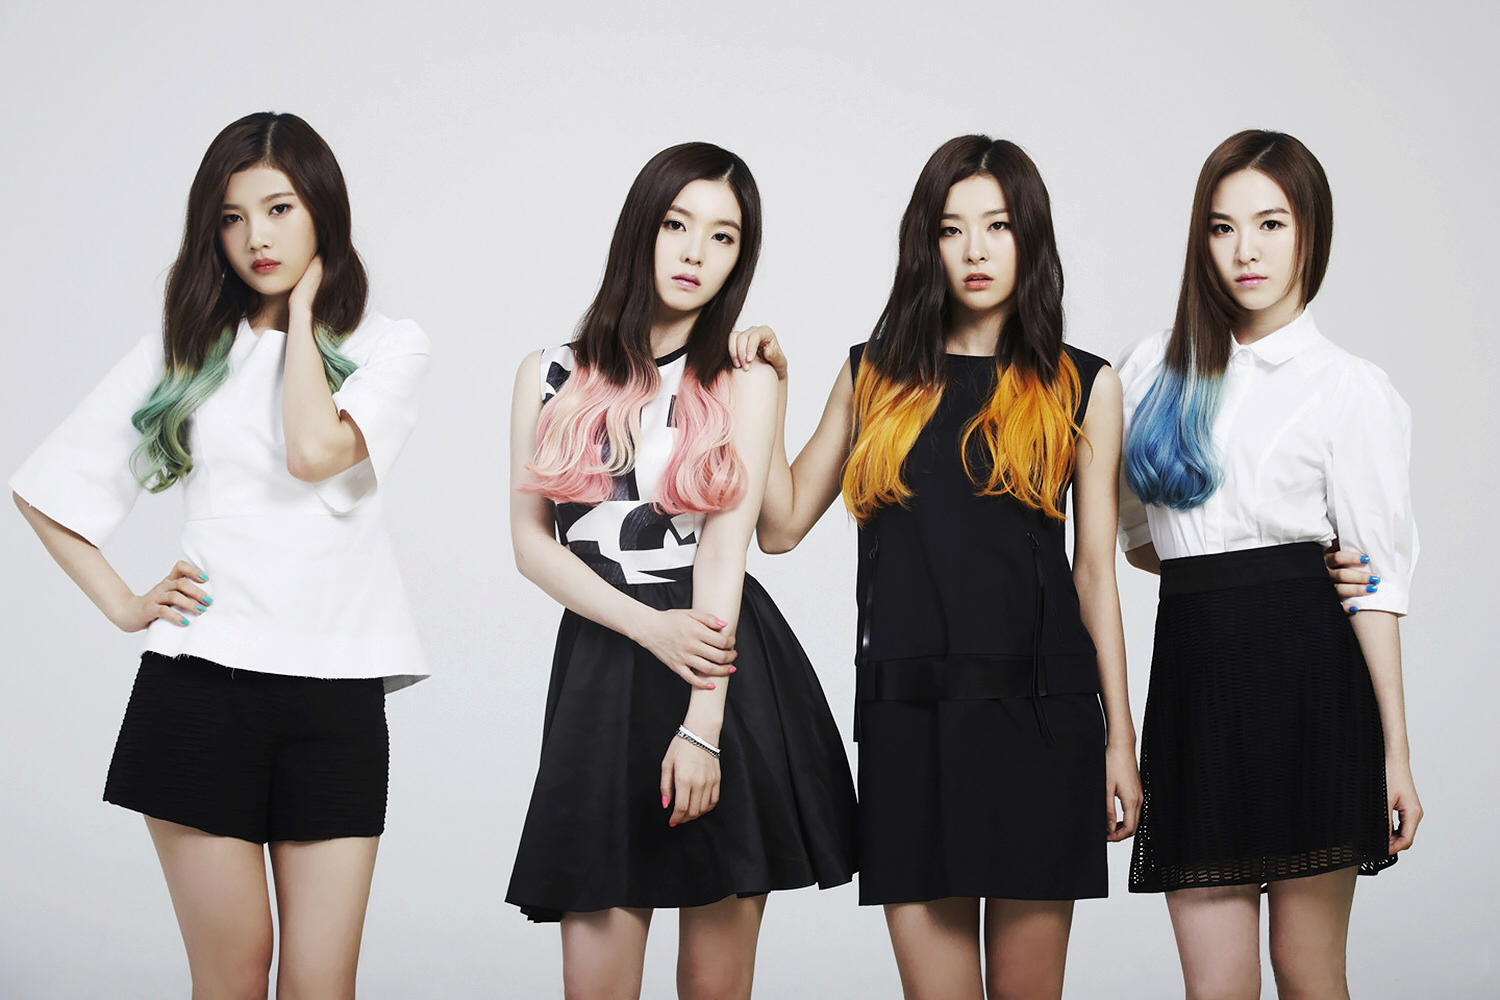 Red Velvet reach #1 in Korea with 'Ice Cream Cake'